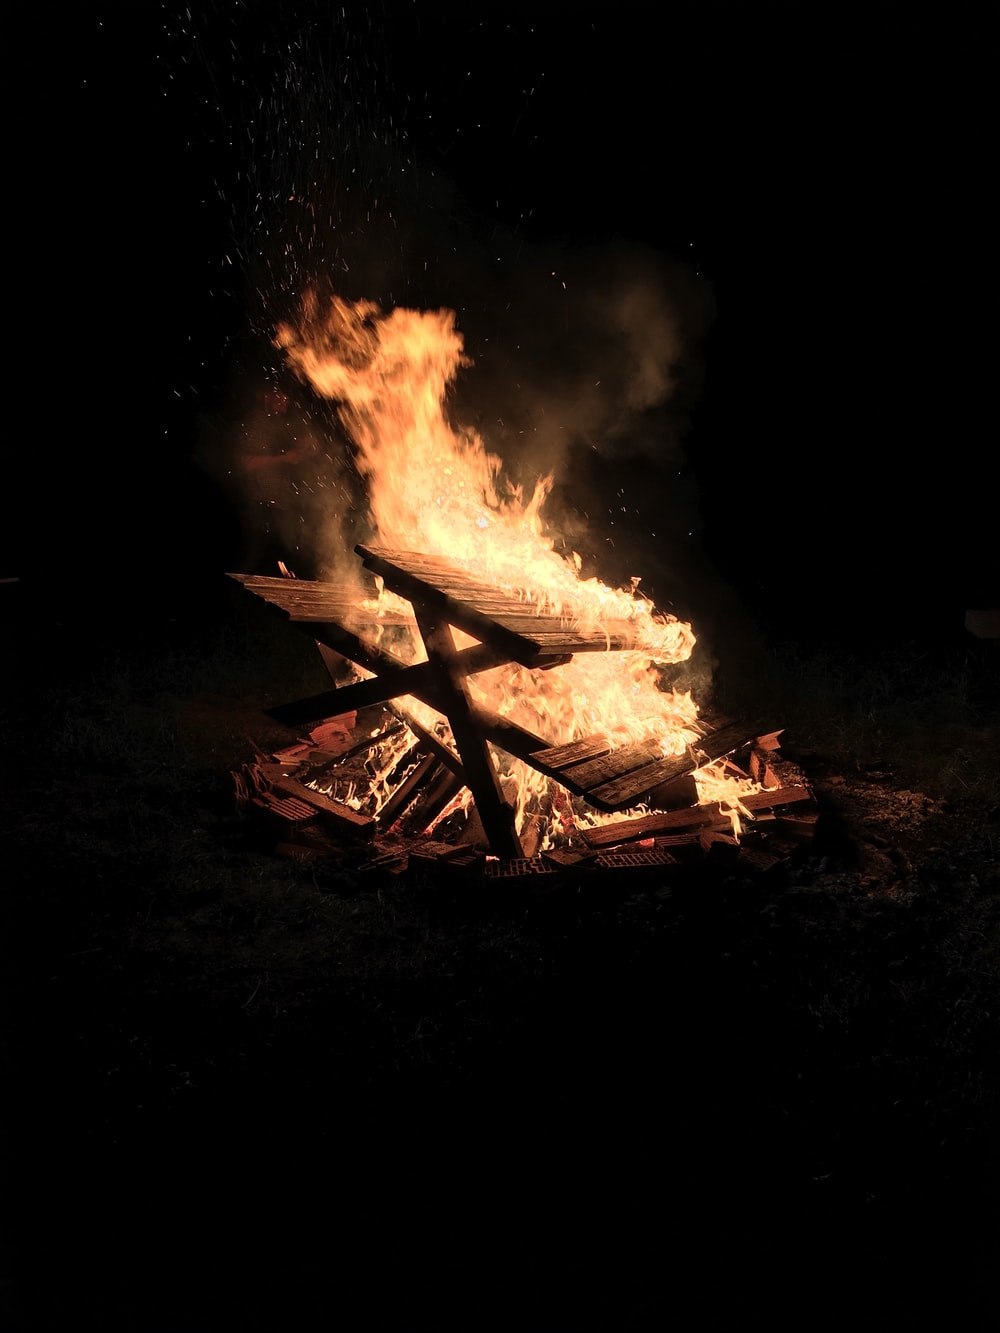 picnic bench on fire against black background